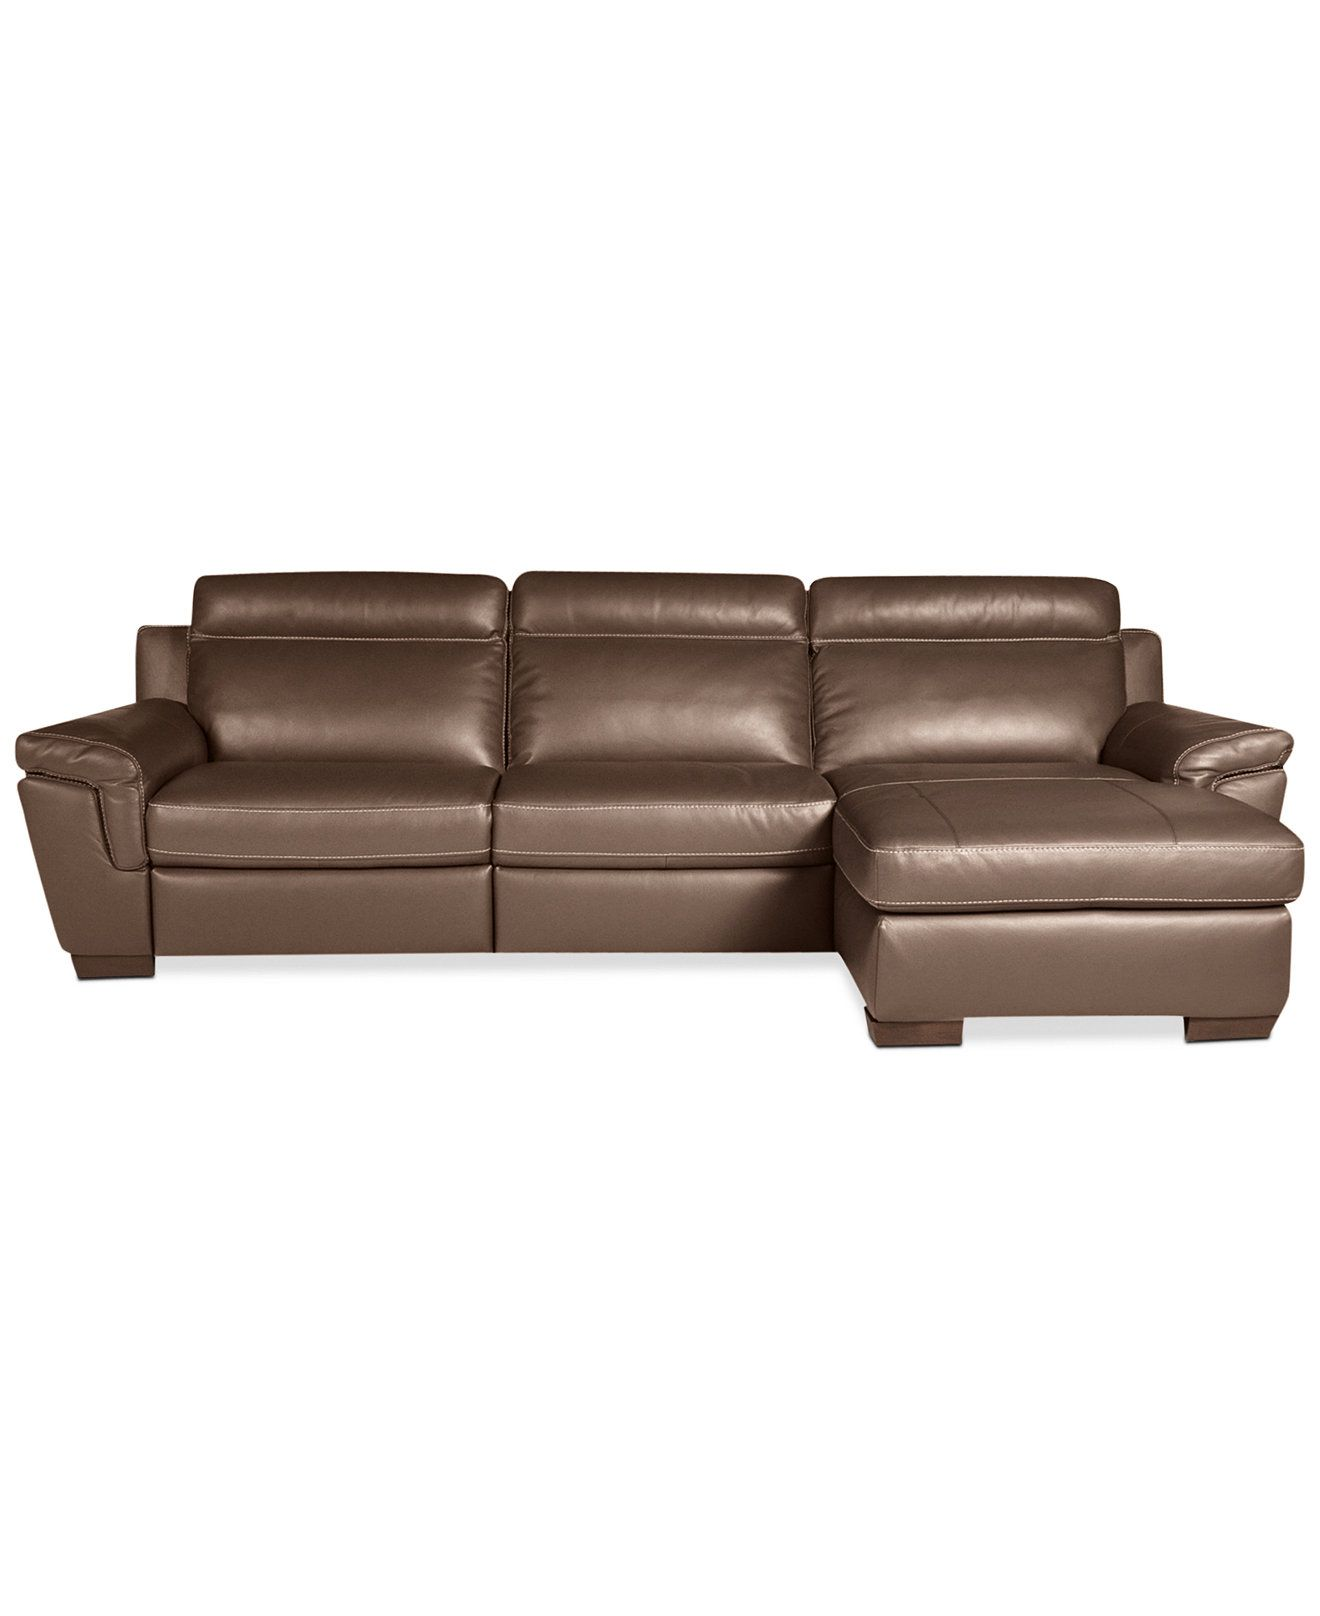 Julius 3 Piece Leather Power Motion Chaise Sectional Sofa Power